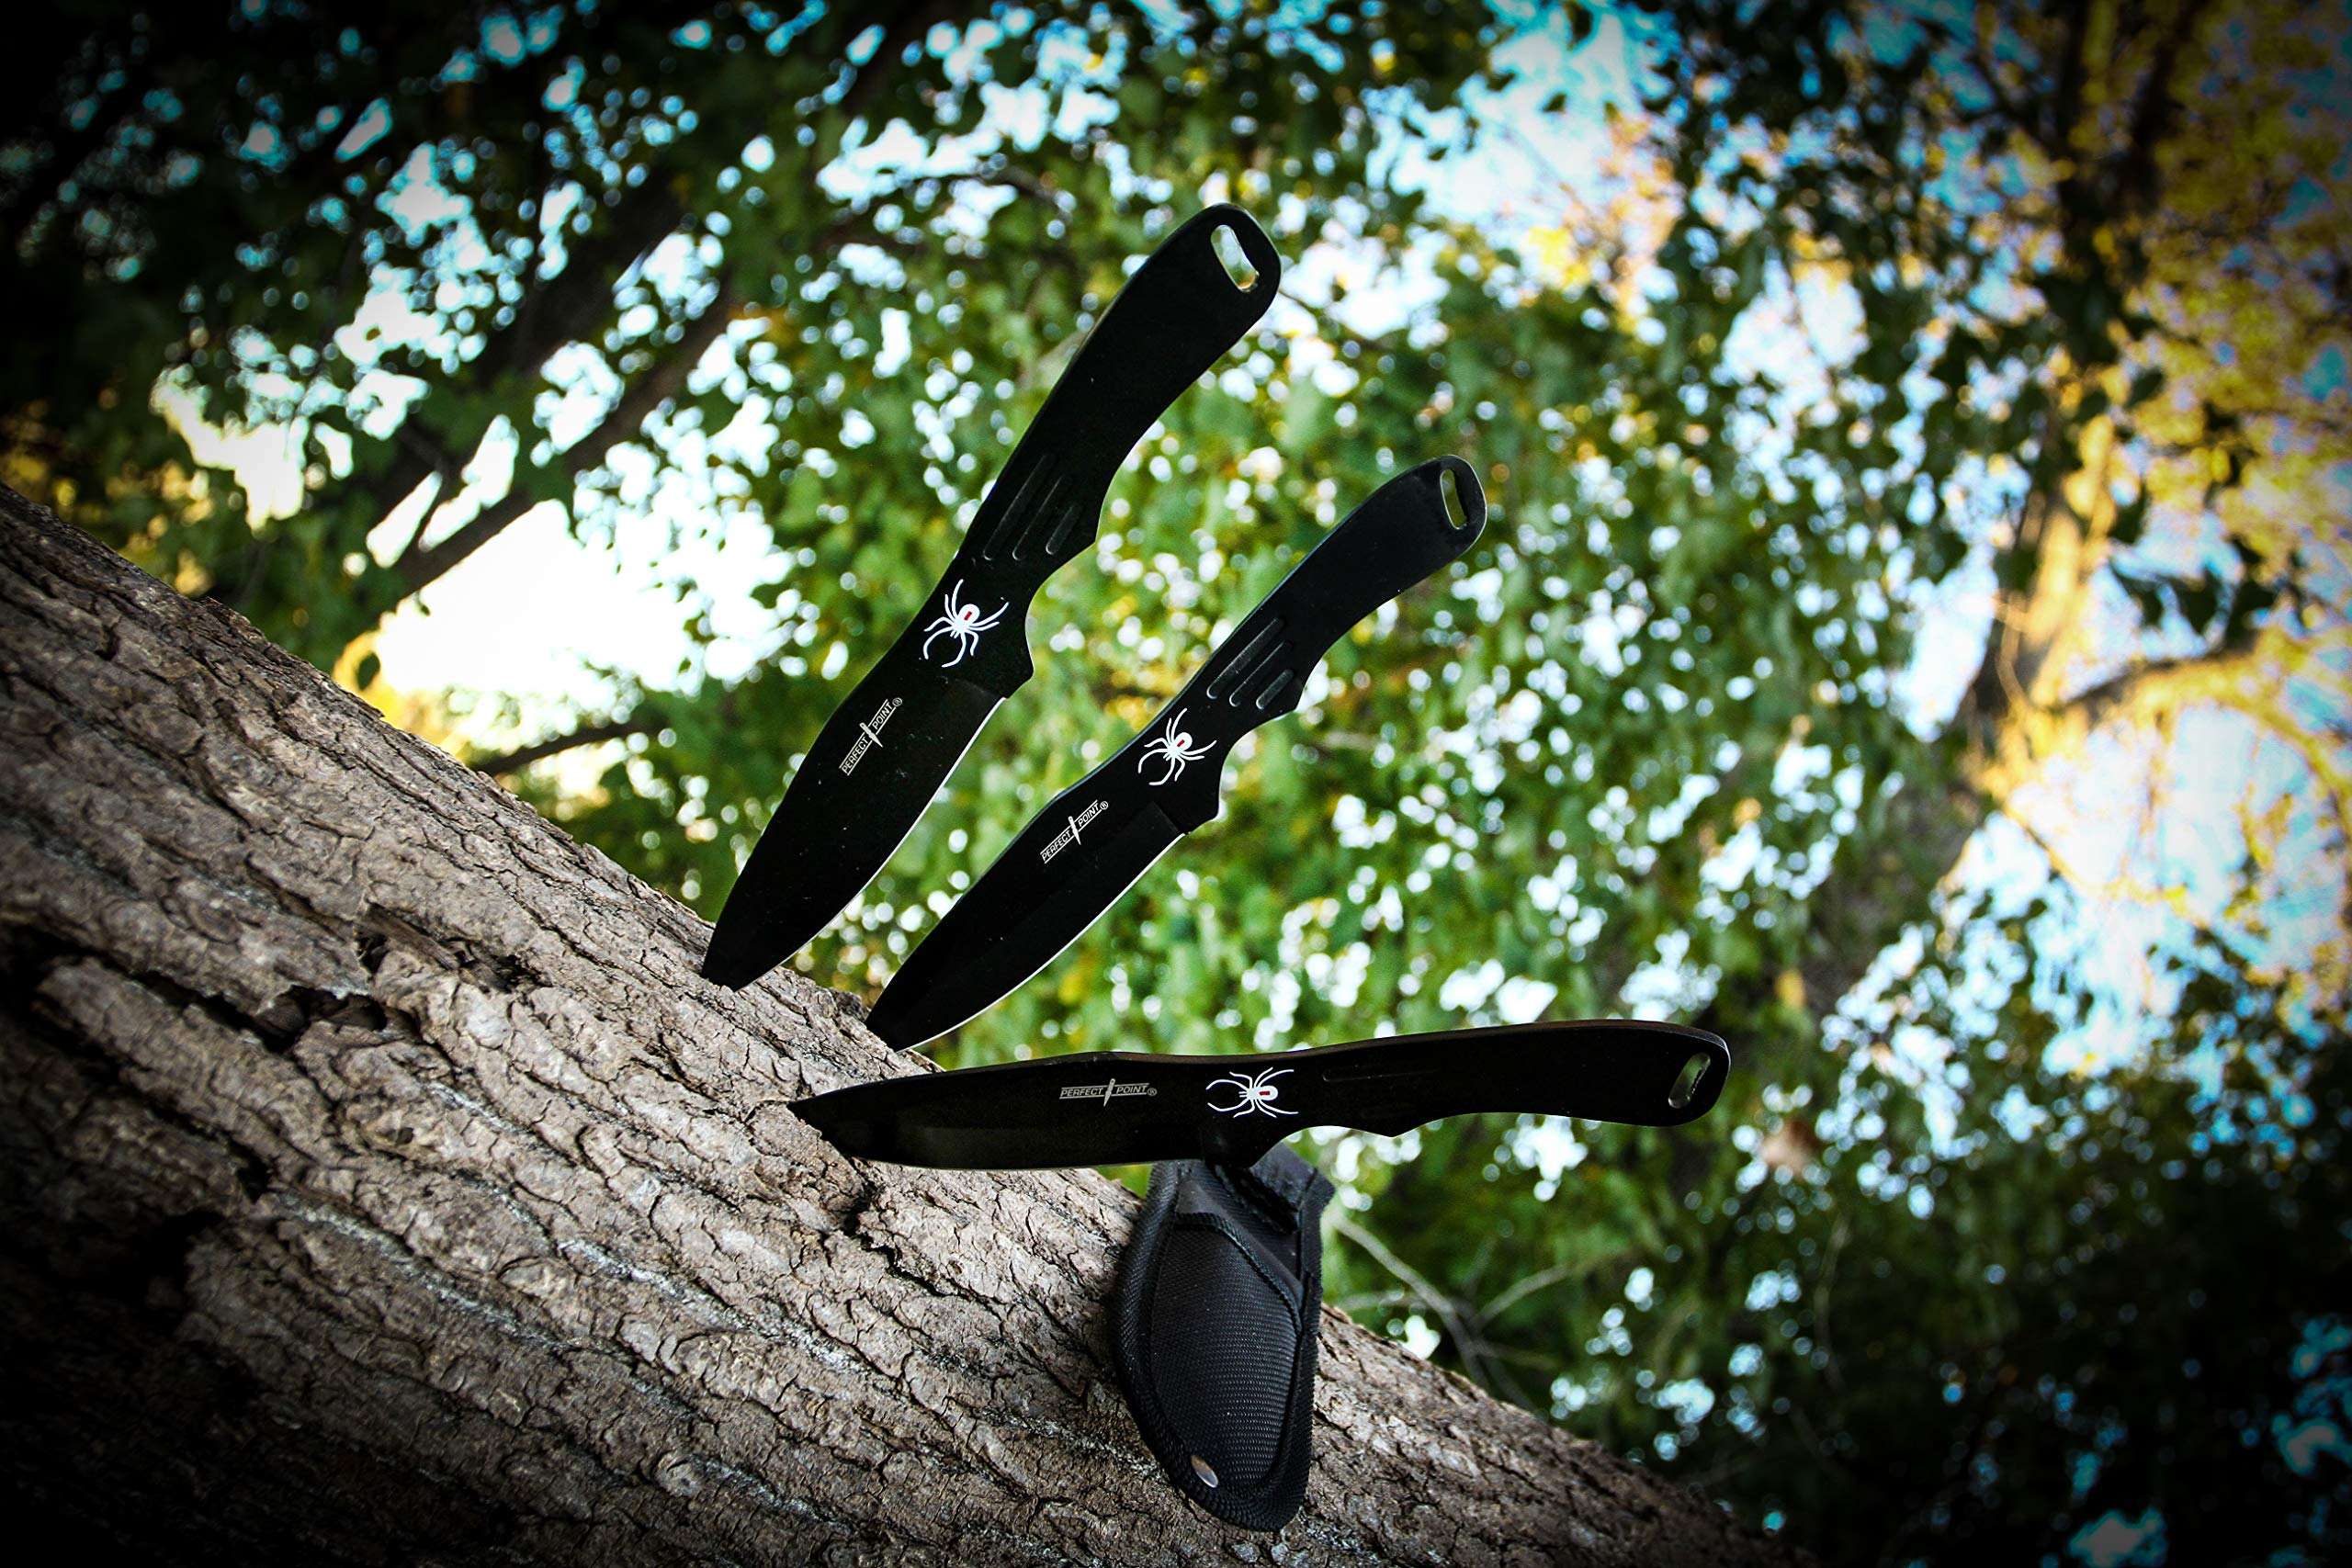 BladesUSA Perfect Point RC-1793B Throwing Knife Set with Three Knives, Black Blades, Steel Handles, 8-Inch Overall